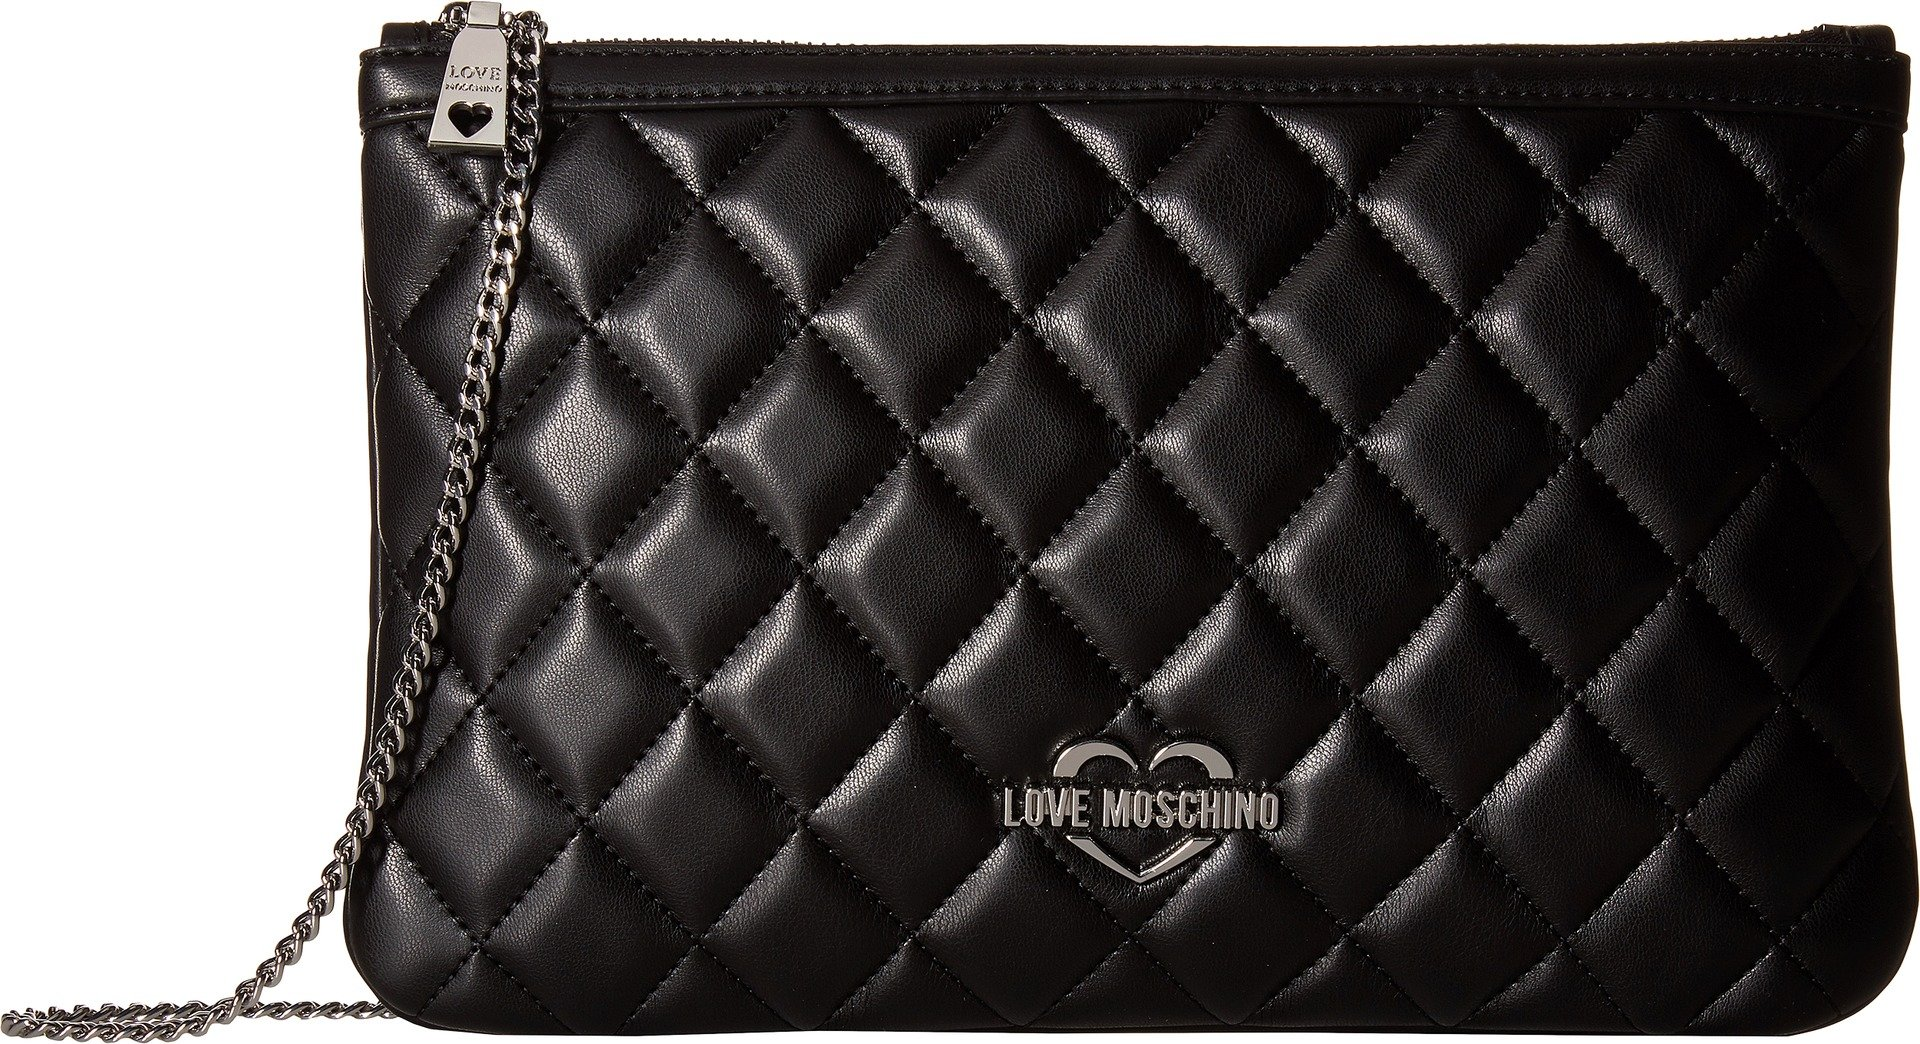 LOVE Moschino Women's Quilted Crossbody Chain Strap Fantasy Black/Nickle Chain One Size